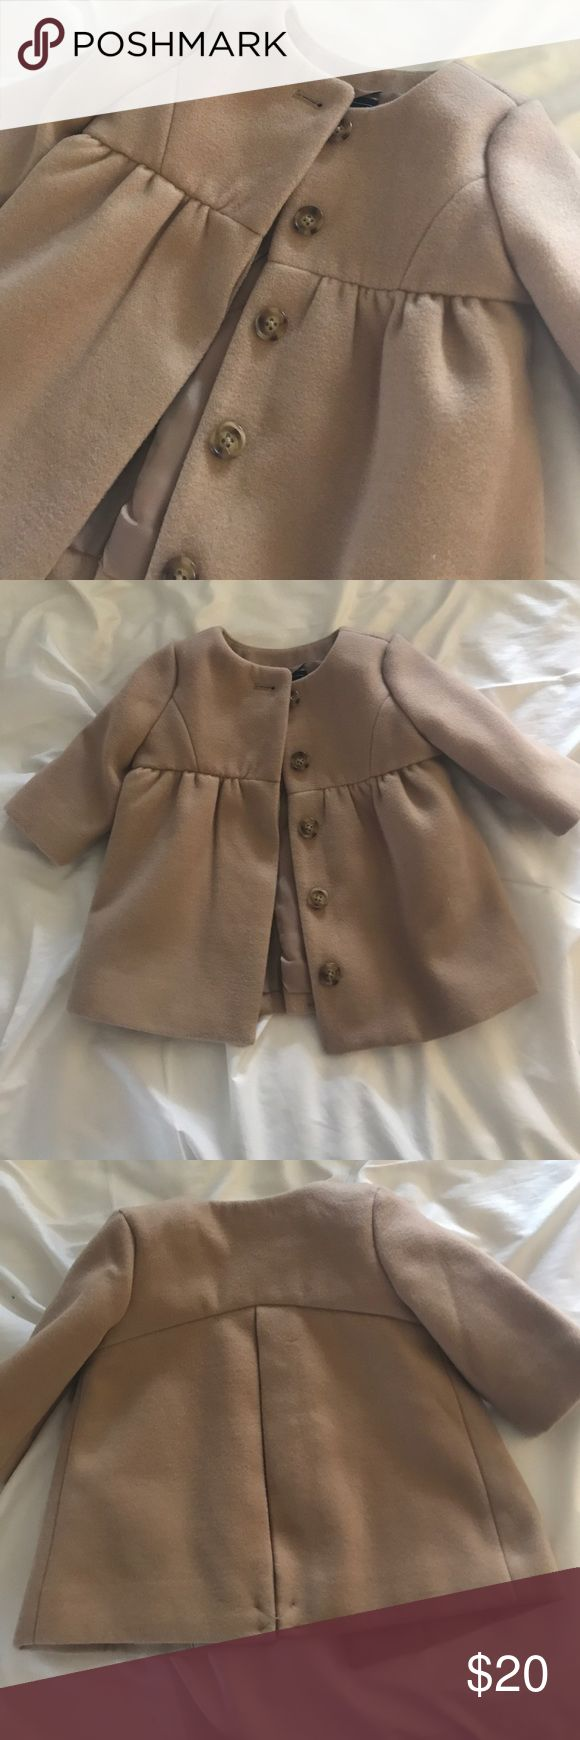 Infant Gap jacket 0-6m NWT BabyGAP camel colored pea coat, size 0-6m. This jacket is beautiful for a spring or fall baby!! Our daughter was too big when we received it as a gift. GAP Jackets & Coats